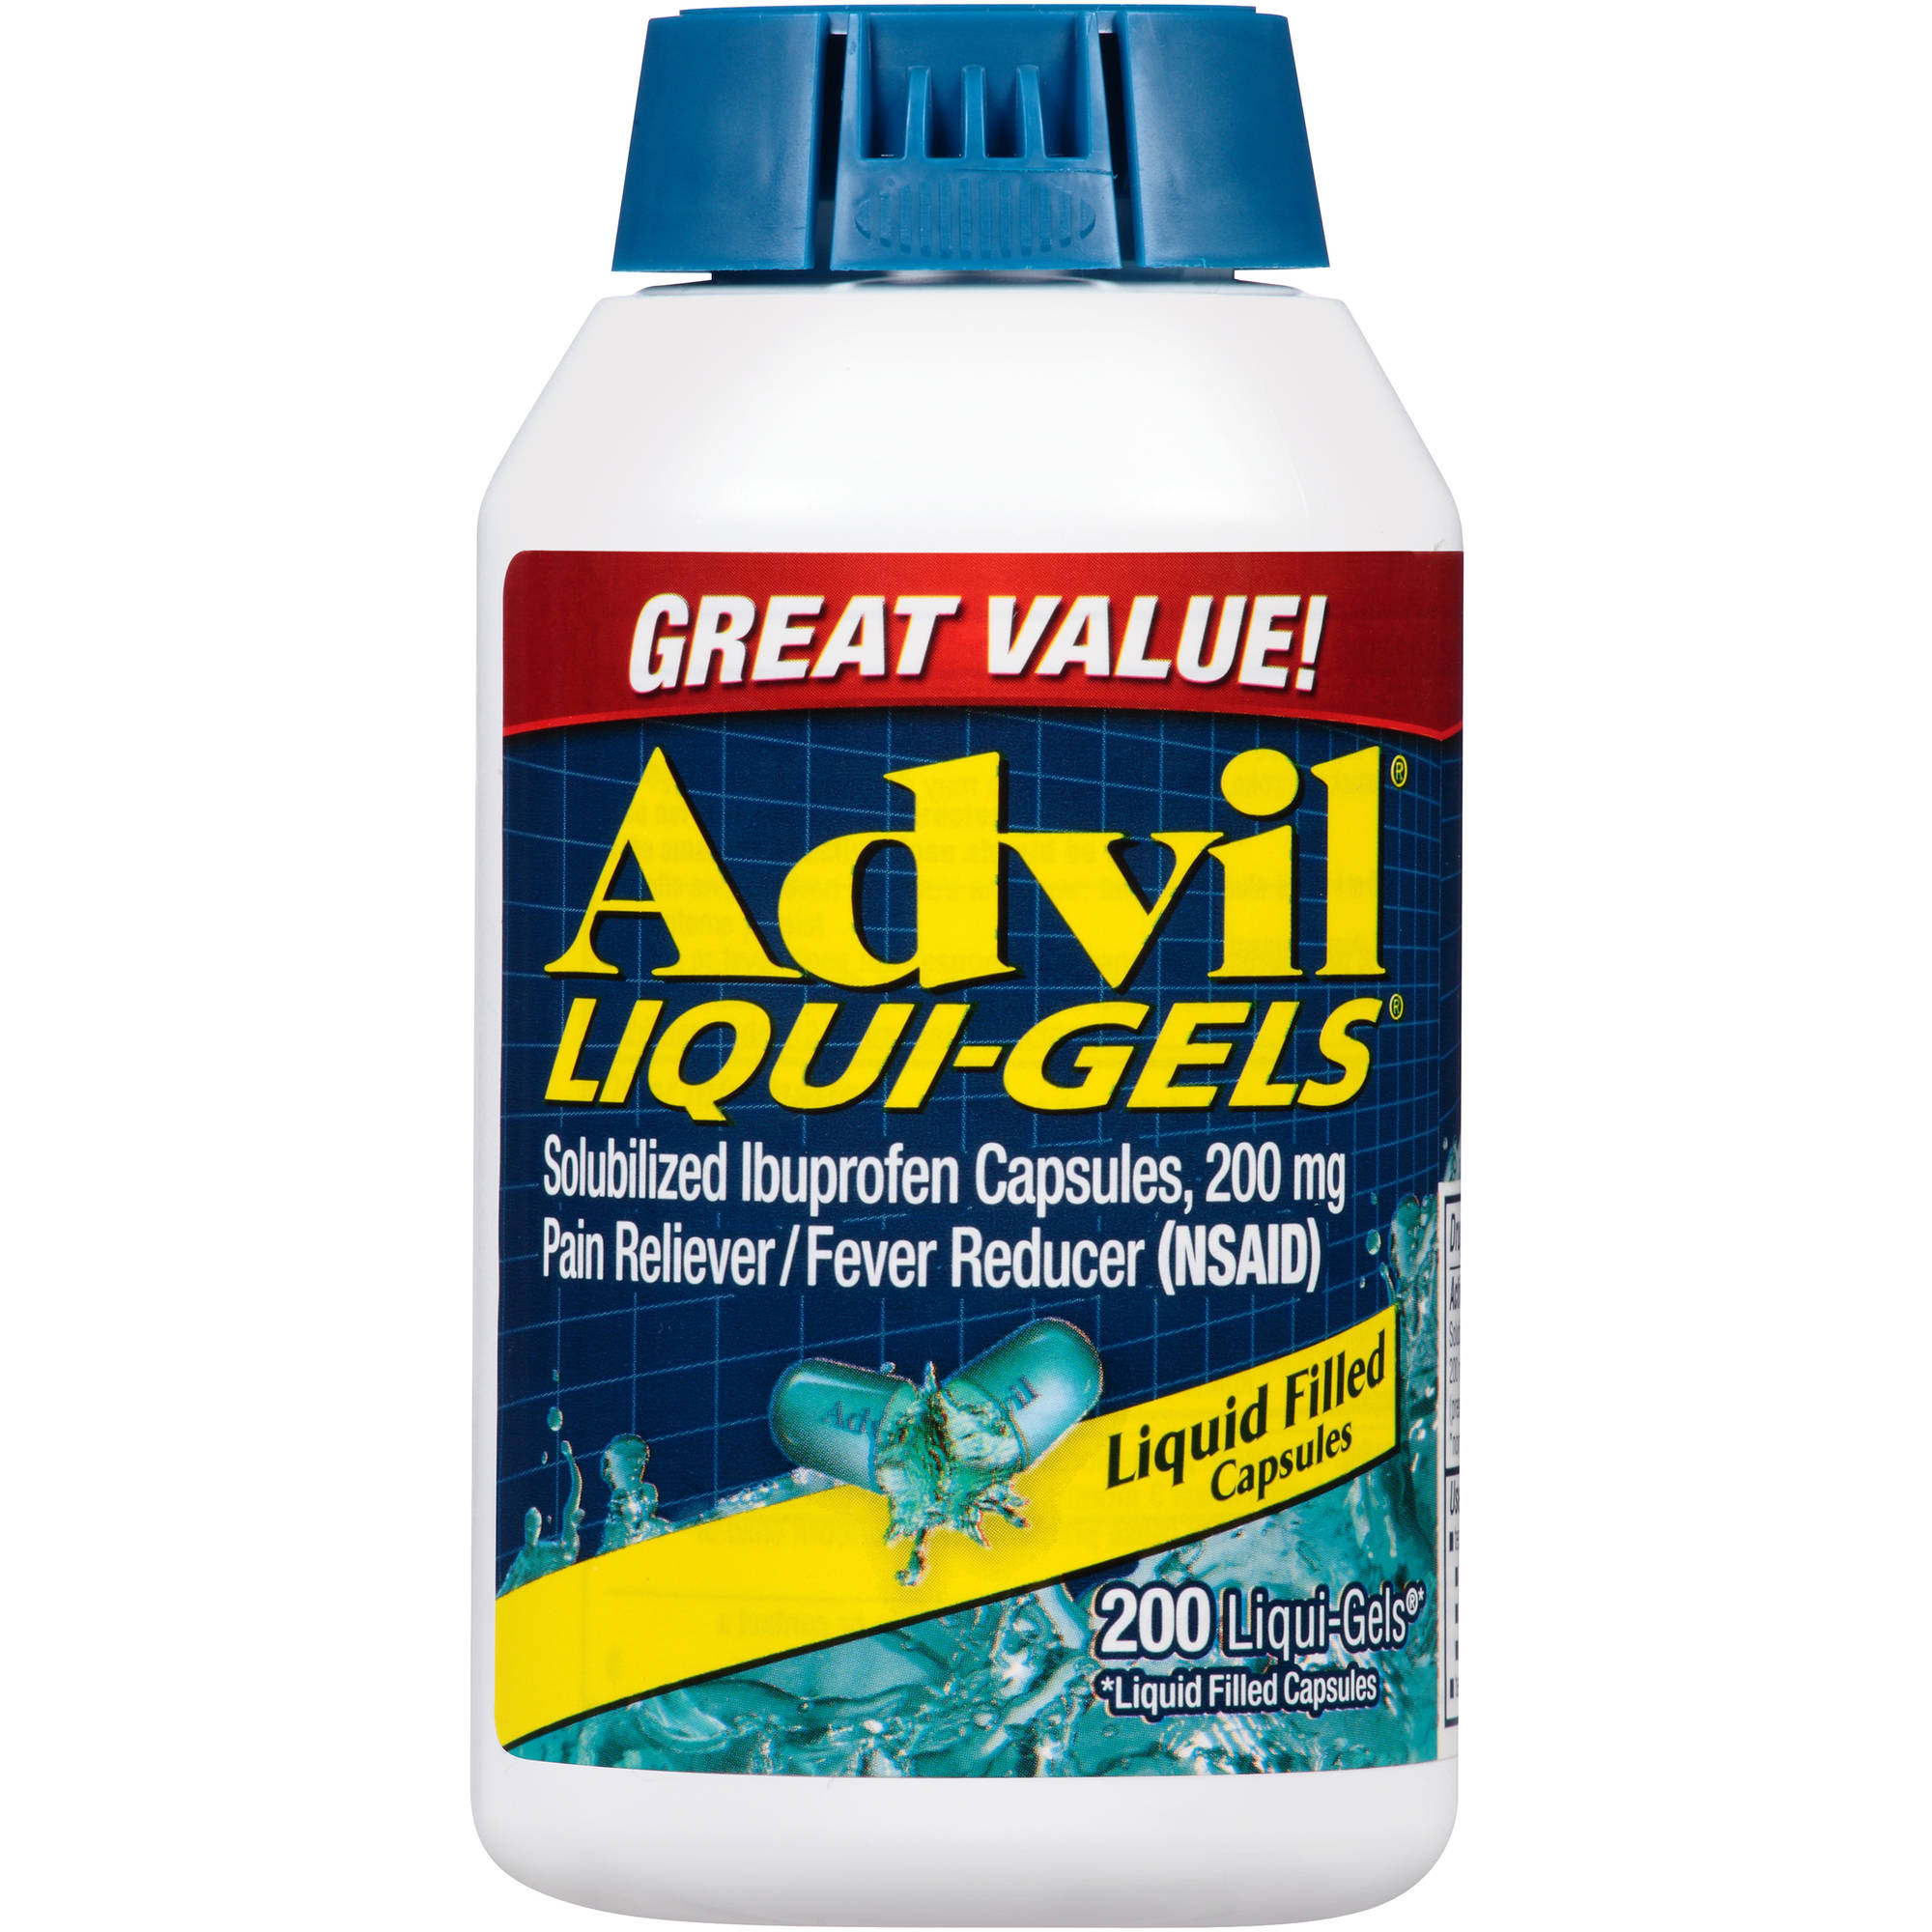 Advil Liqui-Gels Pain Reliever / Fever Reducer (Ibuprofen), 200 mg, 200 Liquid Filled Capsules 200 count